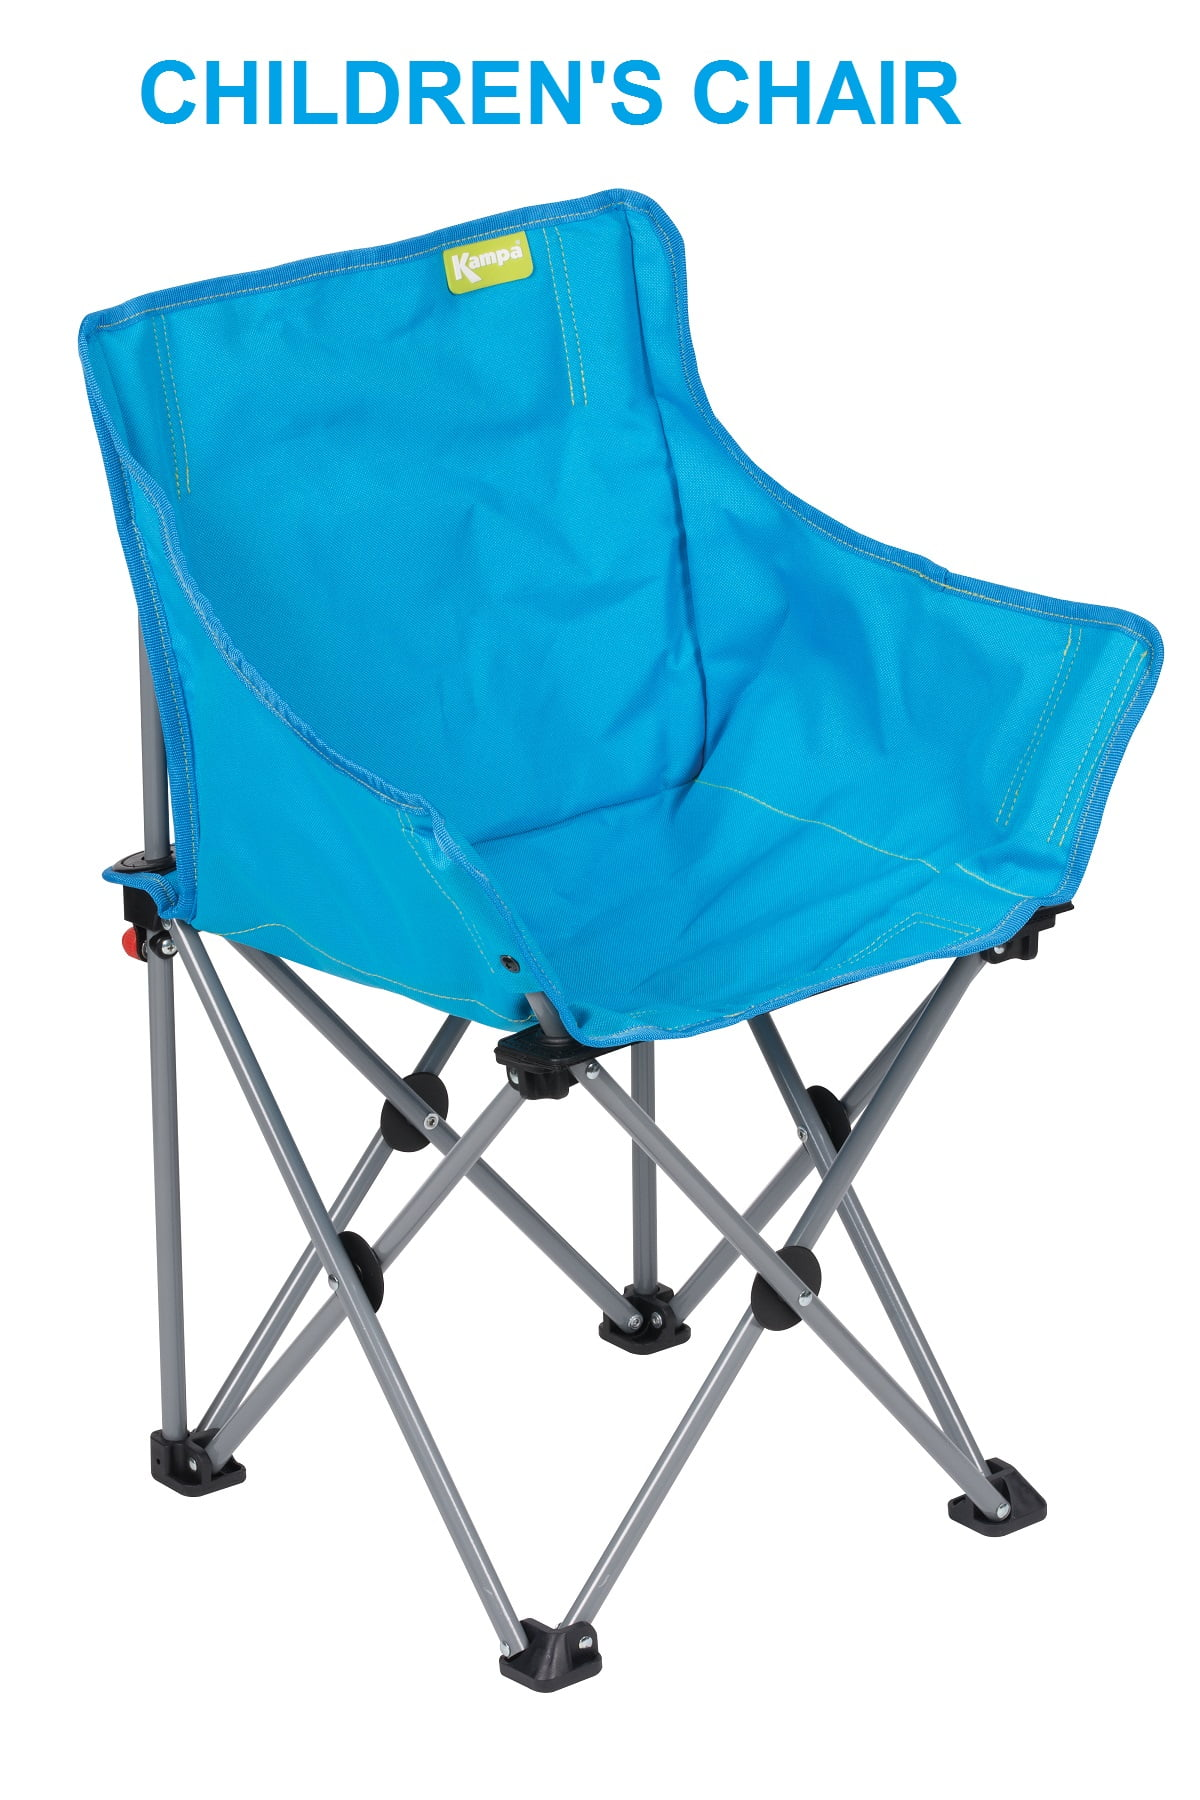 K&a Mini Tub Chair ...  sc 1 st  Magnum Motorhomes : blue tub chair - Cheerinfomania.Com